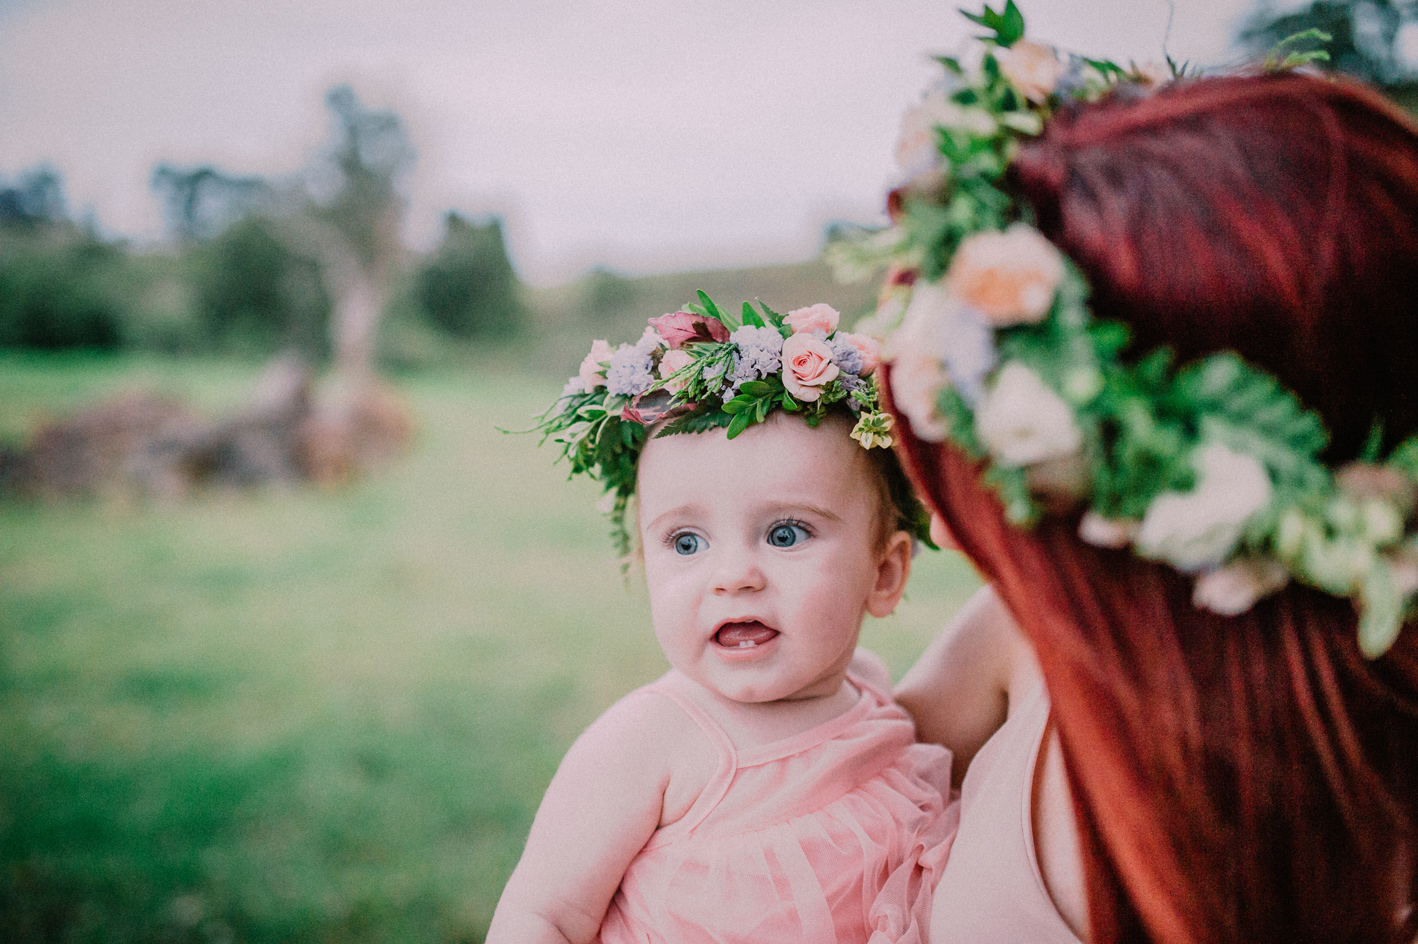 021-family-photos-crown-of-eden-mount-tamborine-sophie-baker-photography